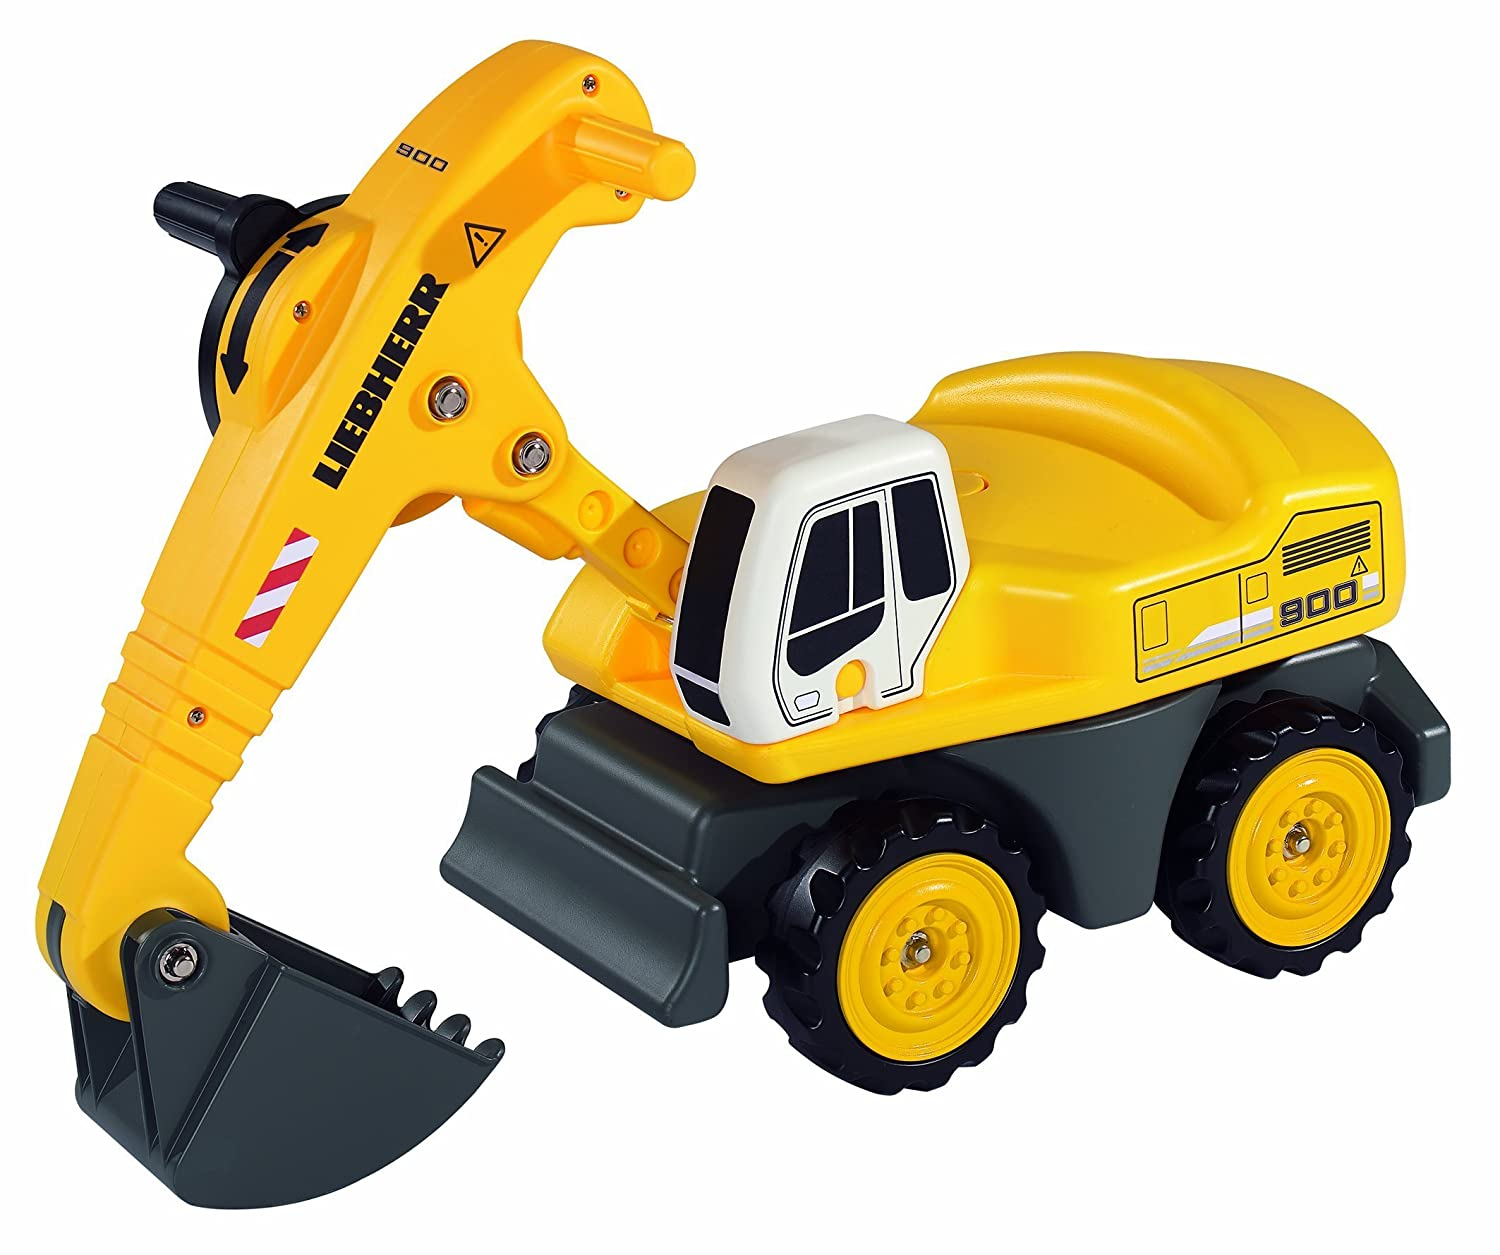 rezension big 56397 - sand digger liebherr, robust und